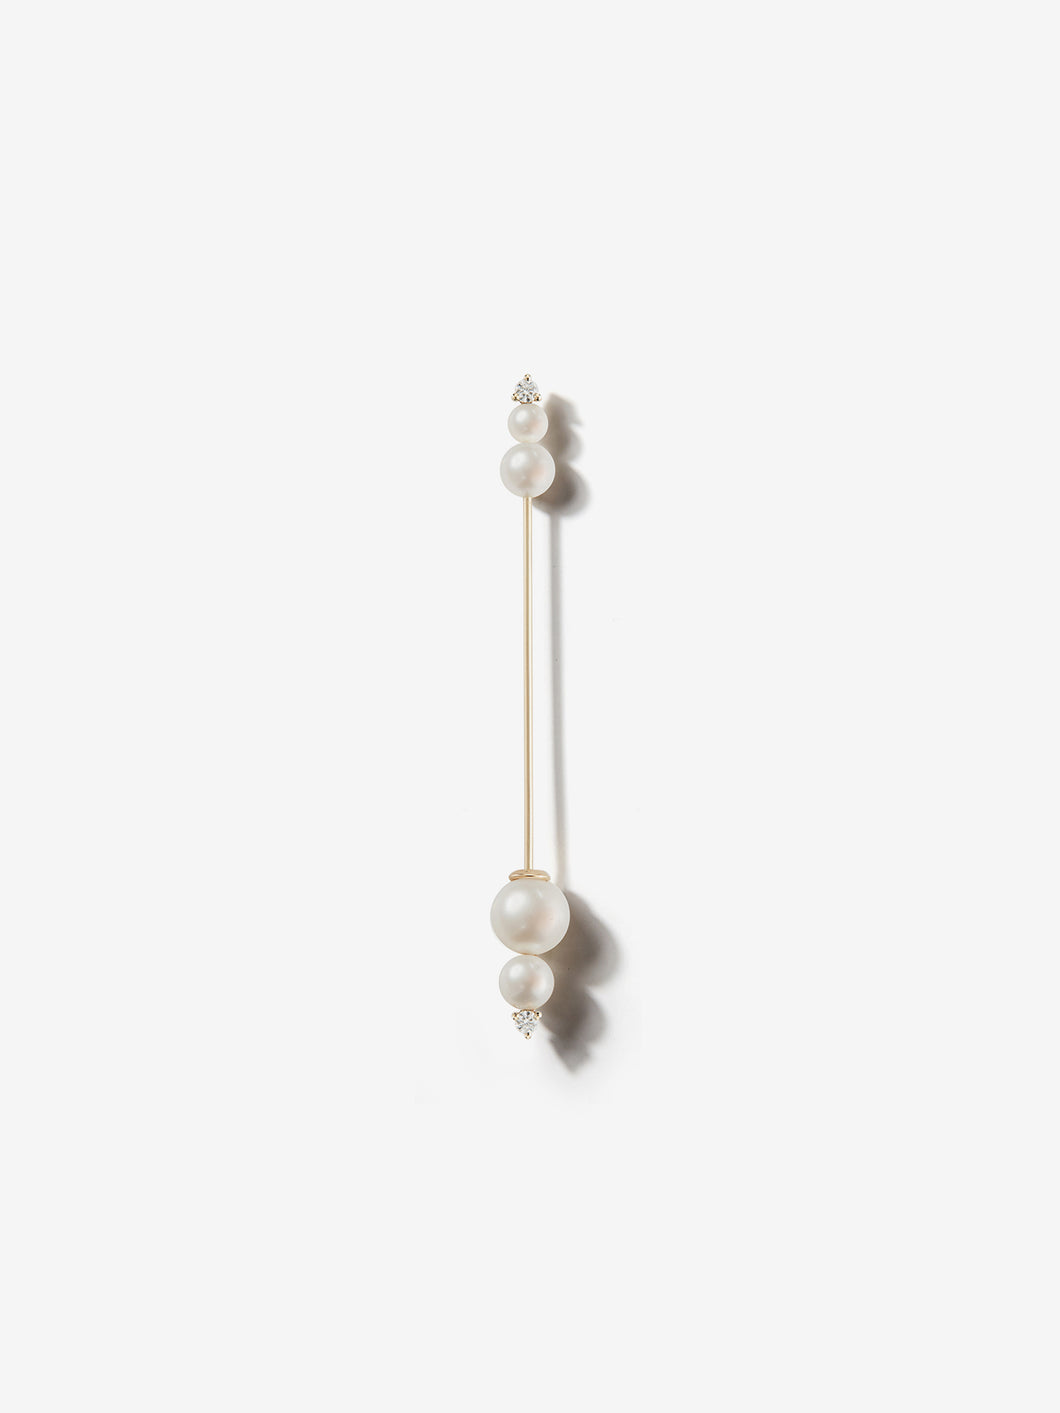 Sea of Beauty Collection.  Single Large Kanzashi Pearl and Diamond Earring SBE268-SINGLE